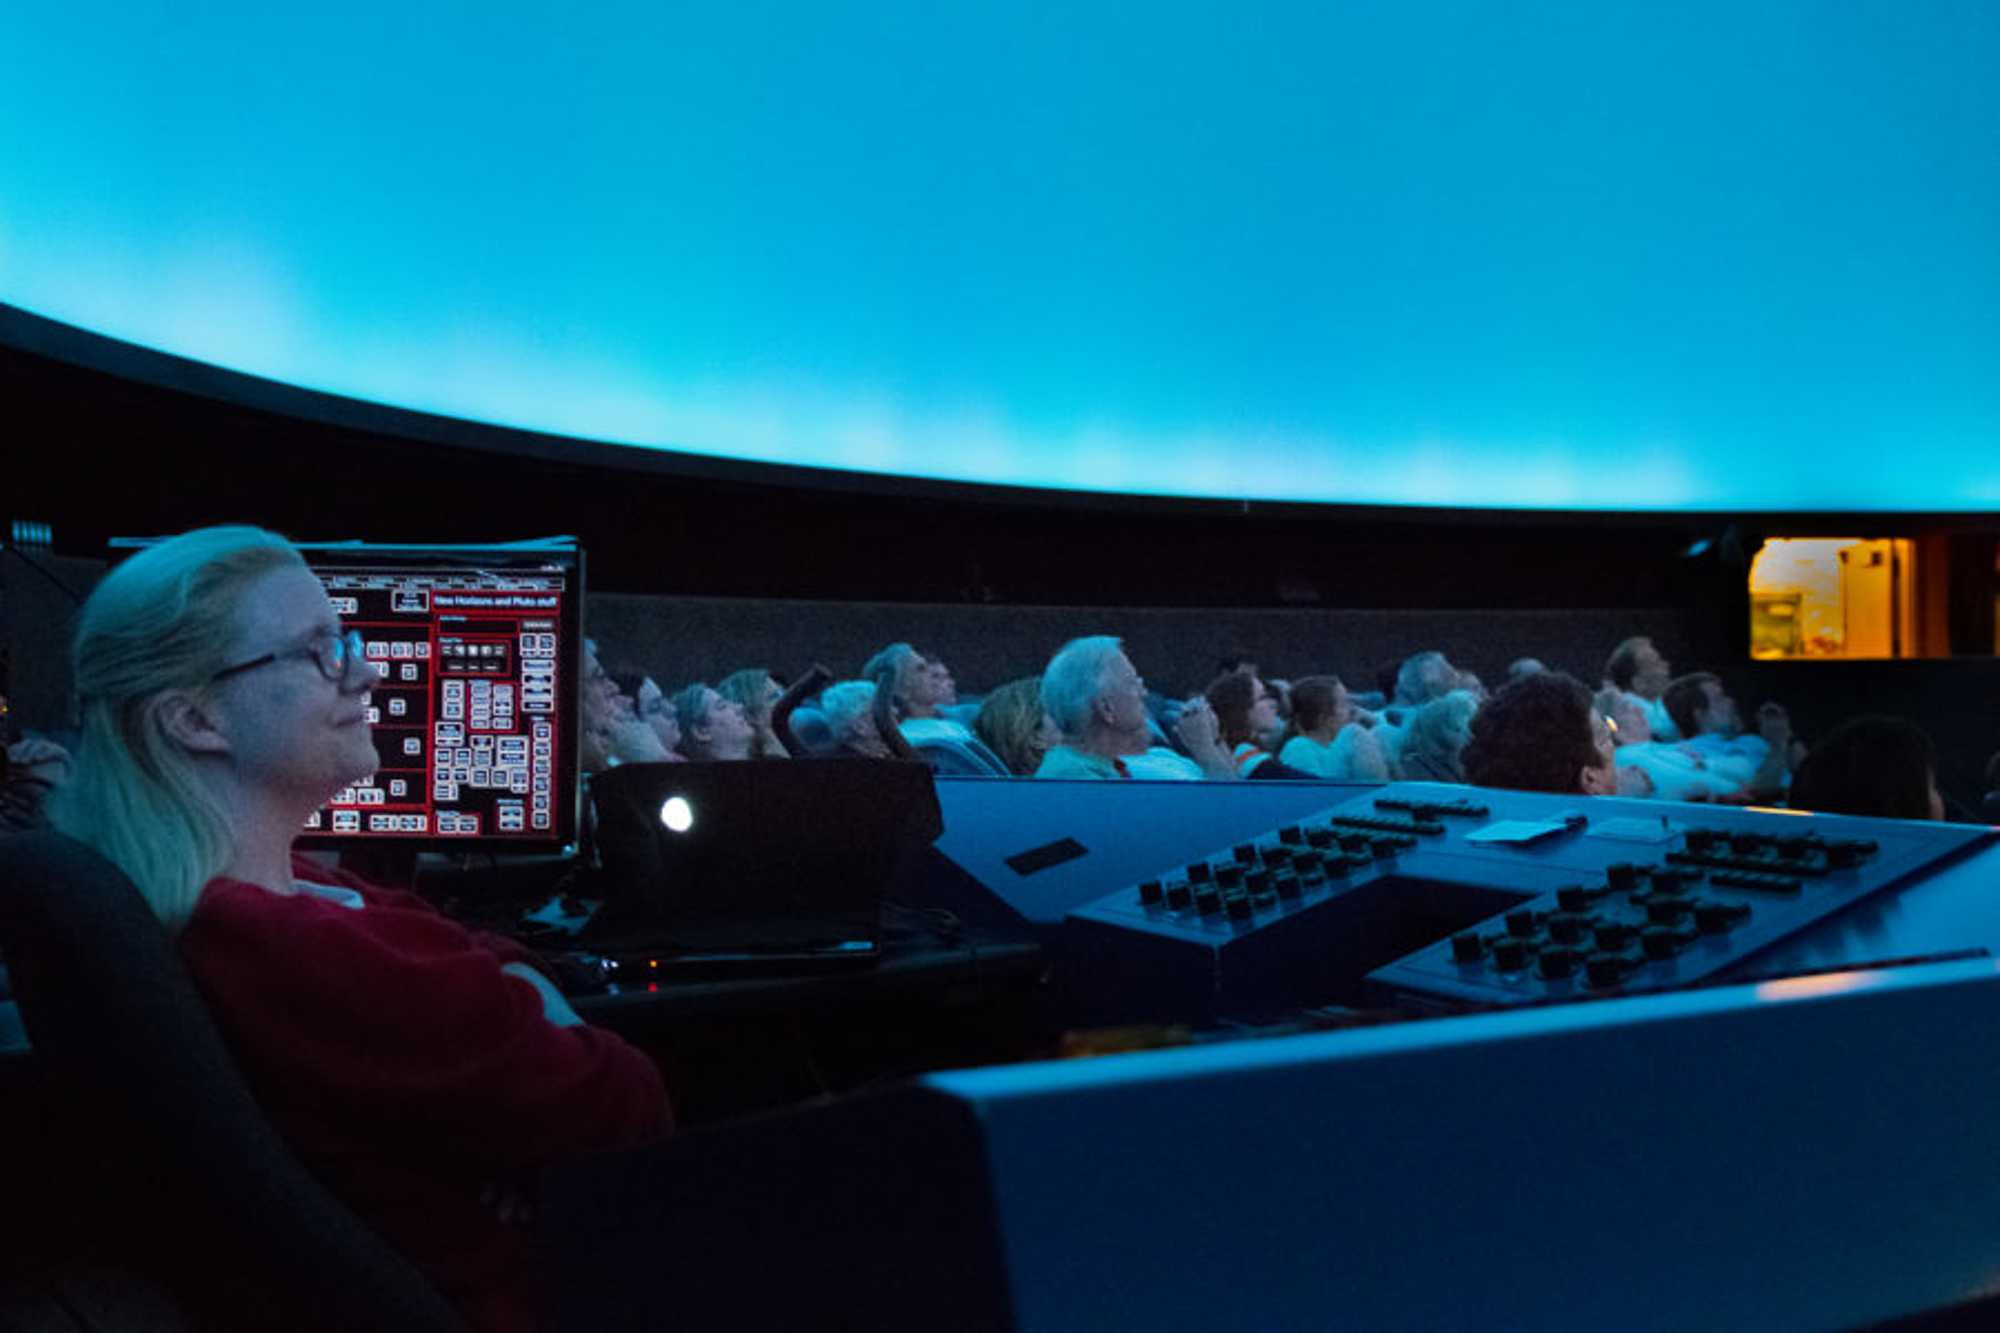 The observatory in Urbana offers resources for students to view the night sky.